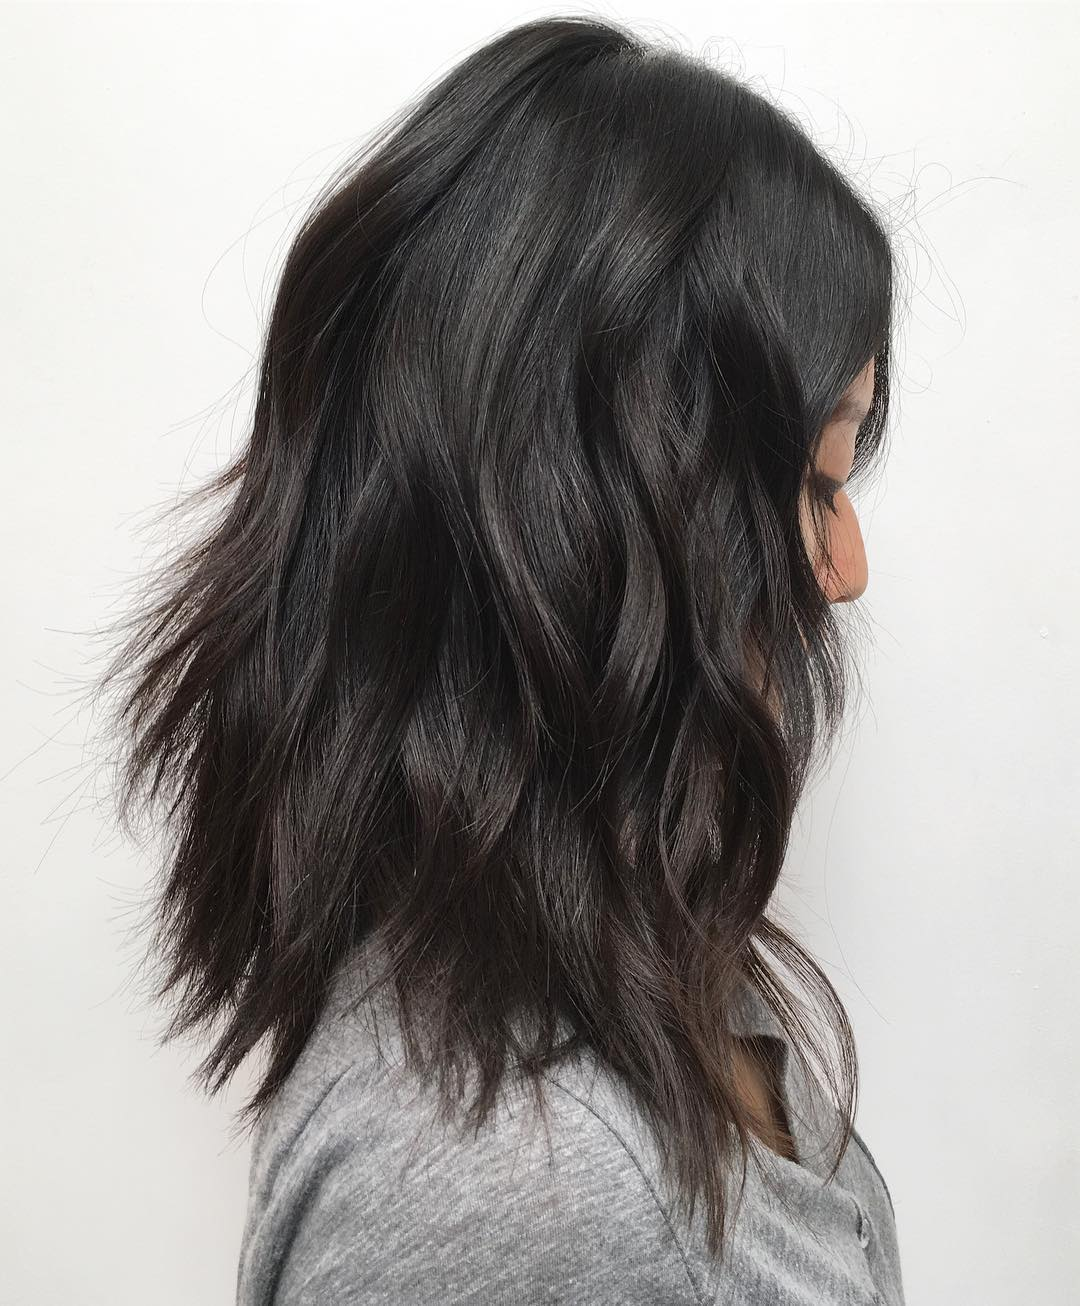 Shoulder Length Haircut with Thick Shaggy Layers